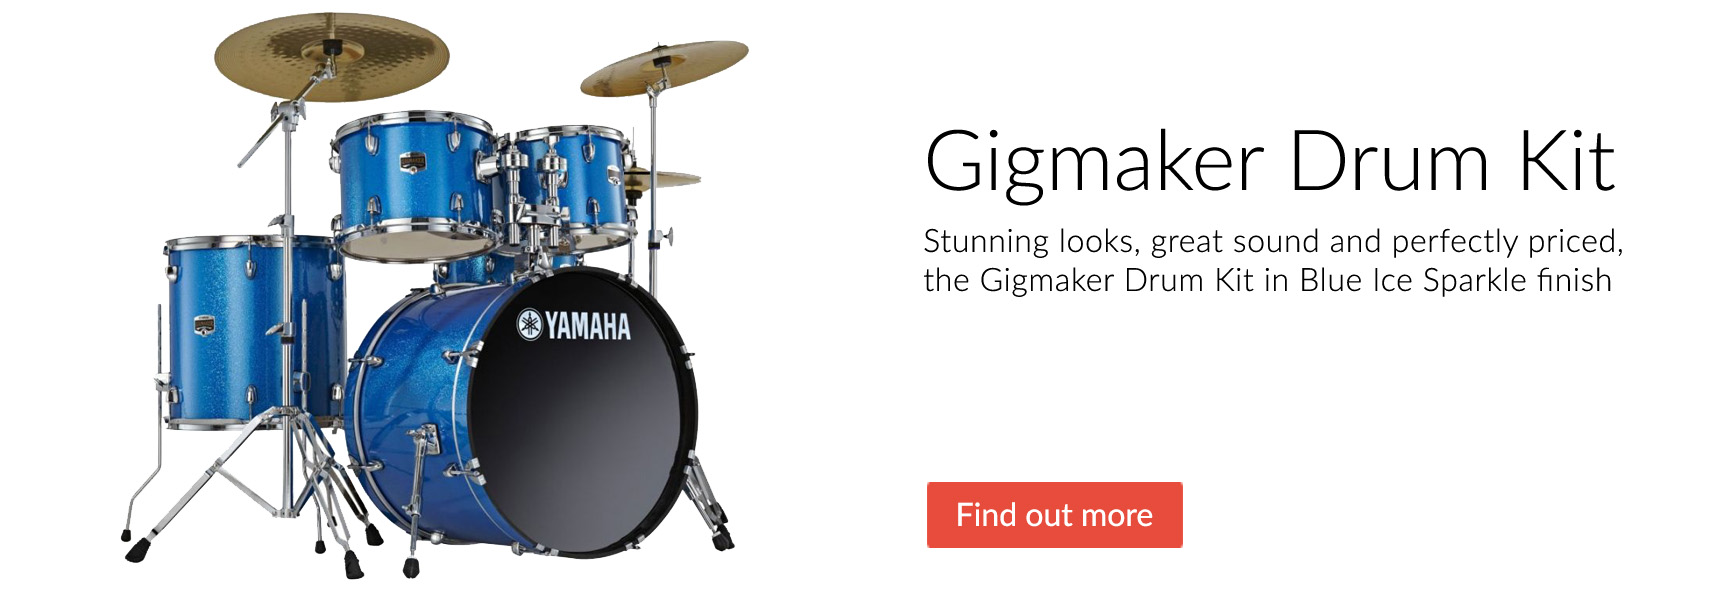 Yamaha Gigmaker Drum Kits for Beginners